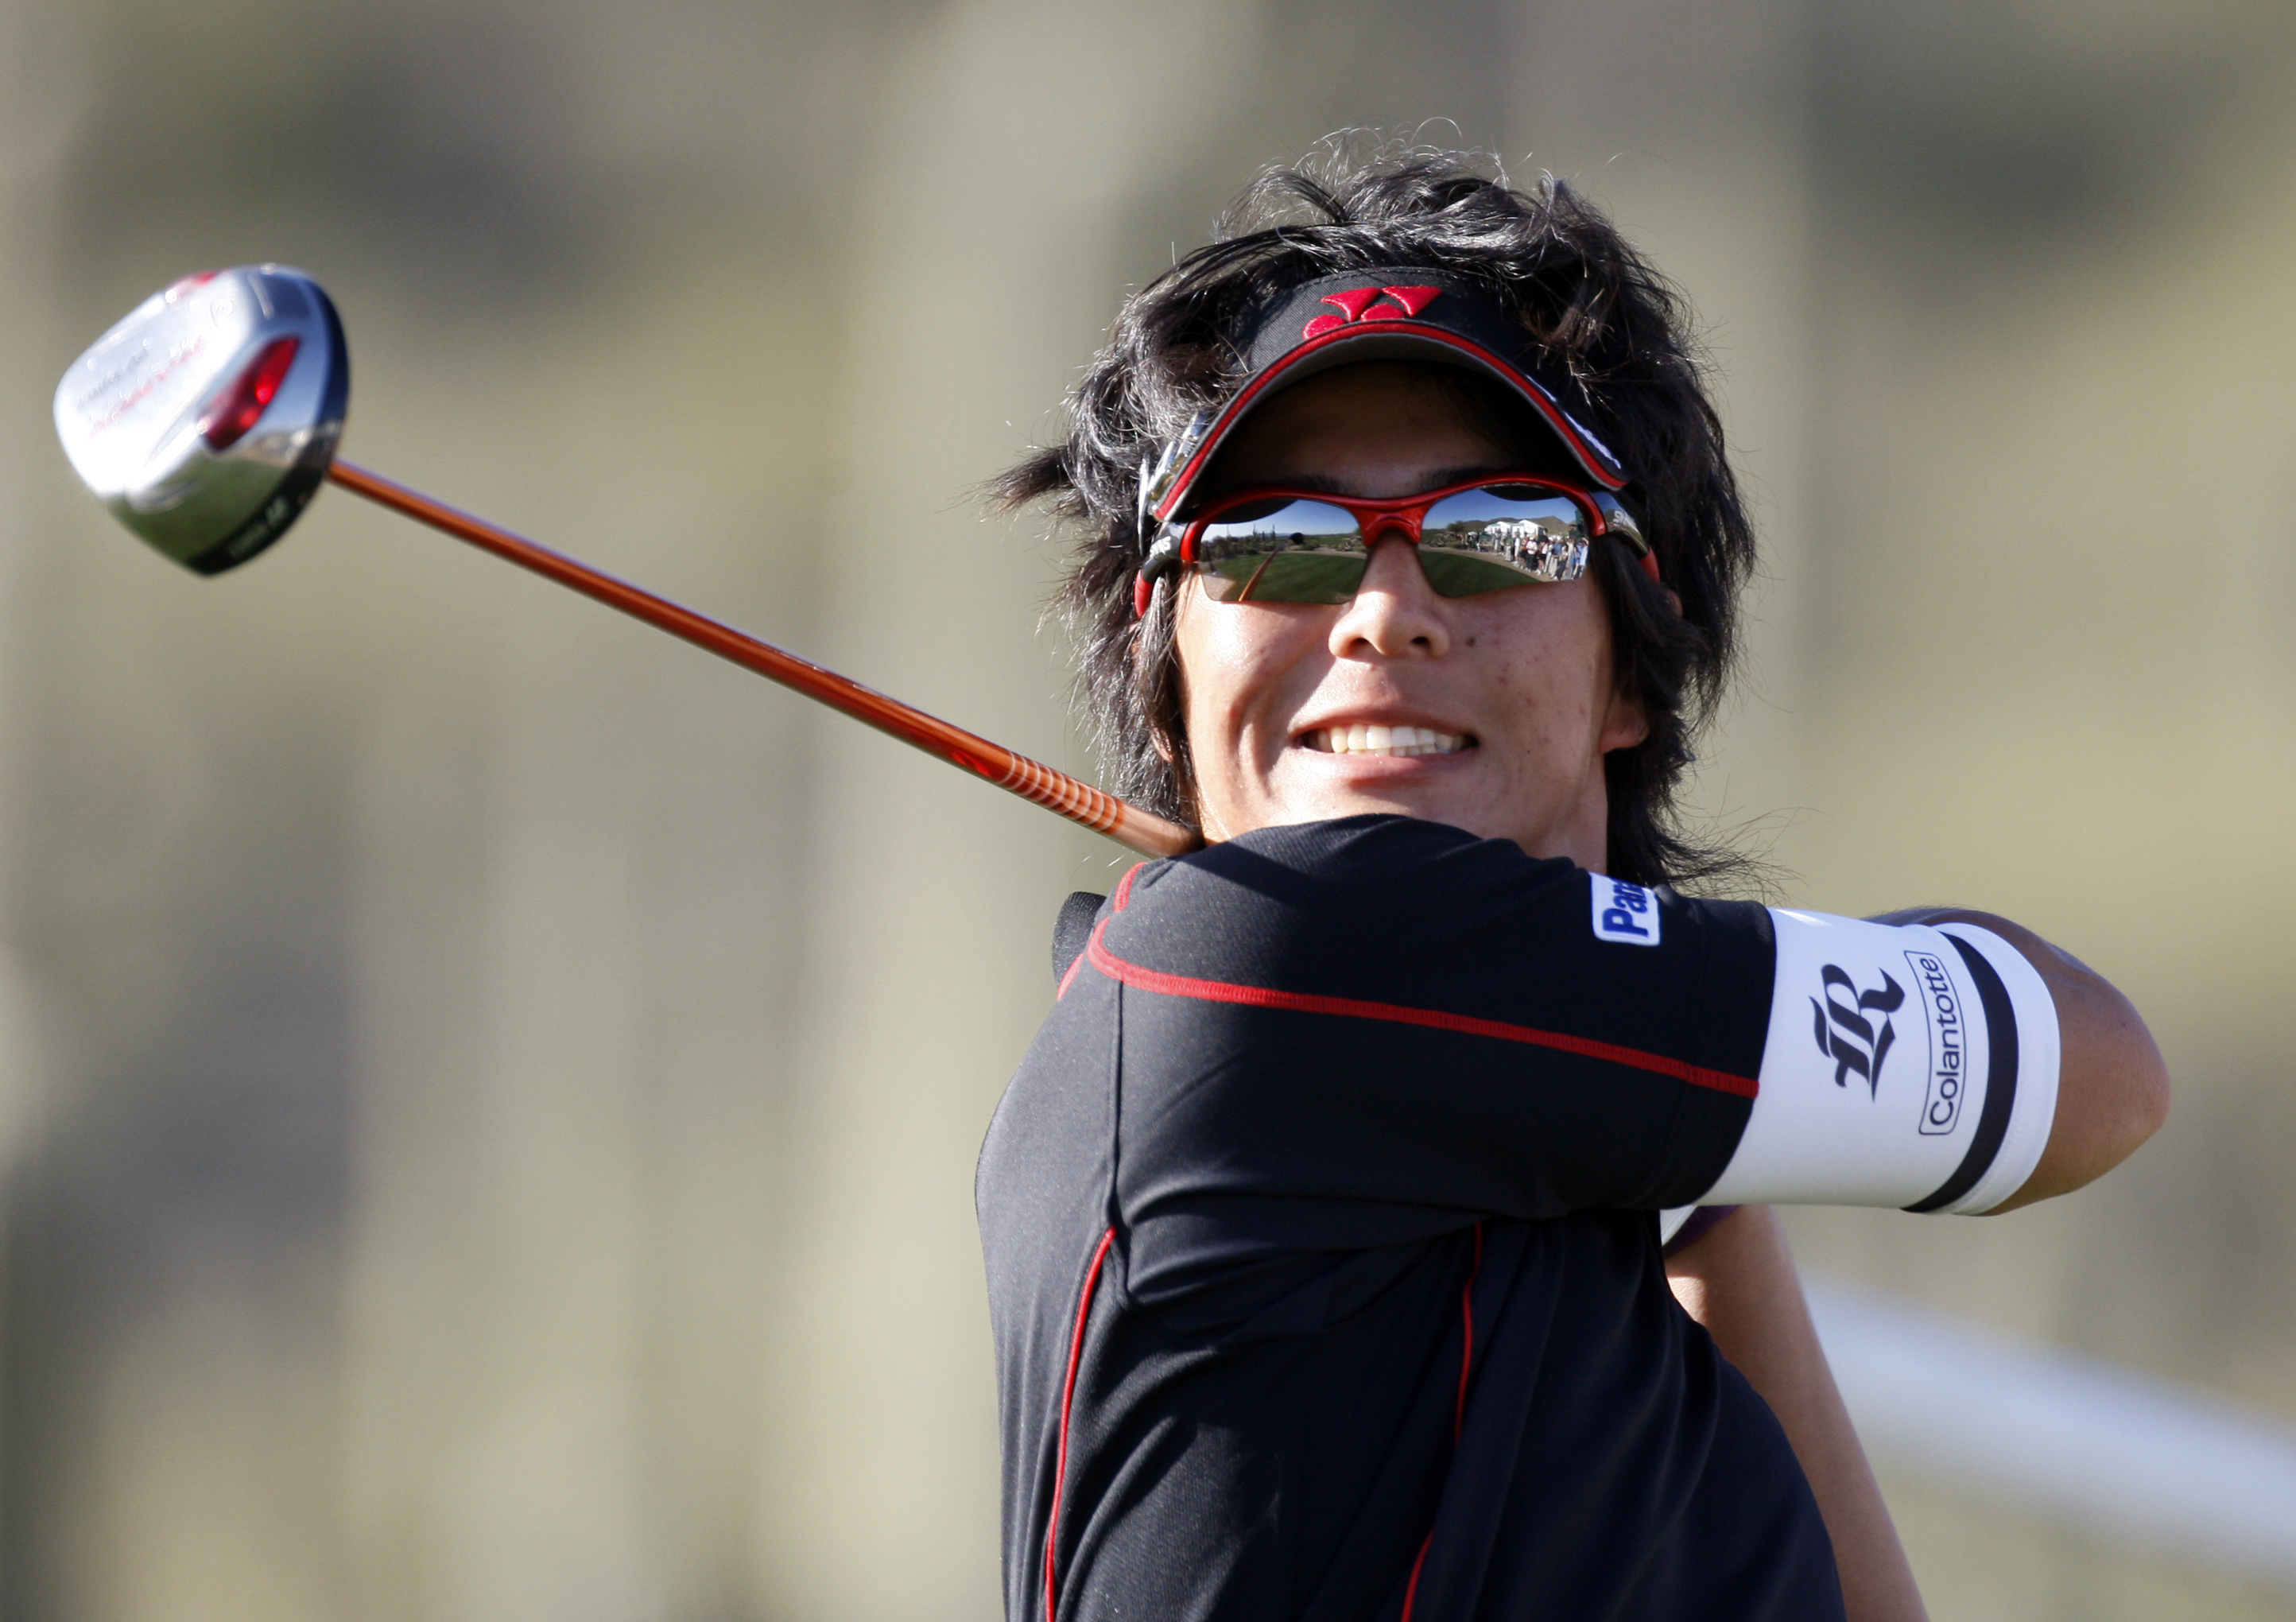 Ryo Ishikawa watches his drive on the 17th hole during the opening round of the Accenture Match Play Championship.